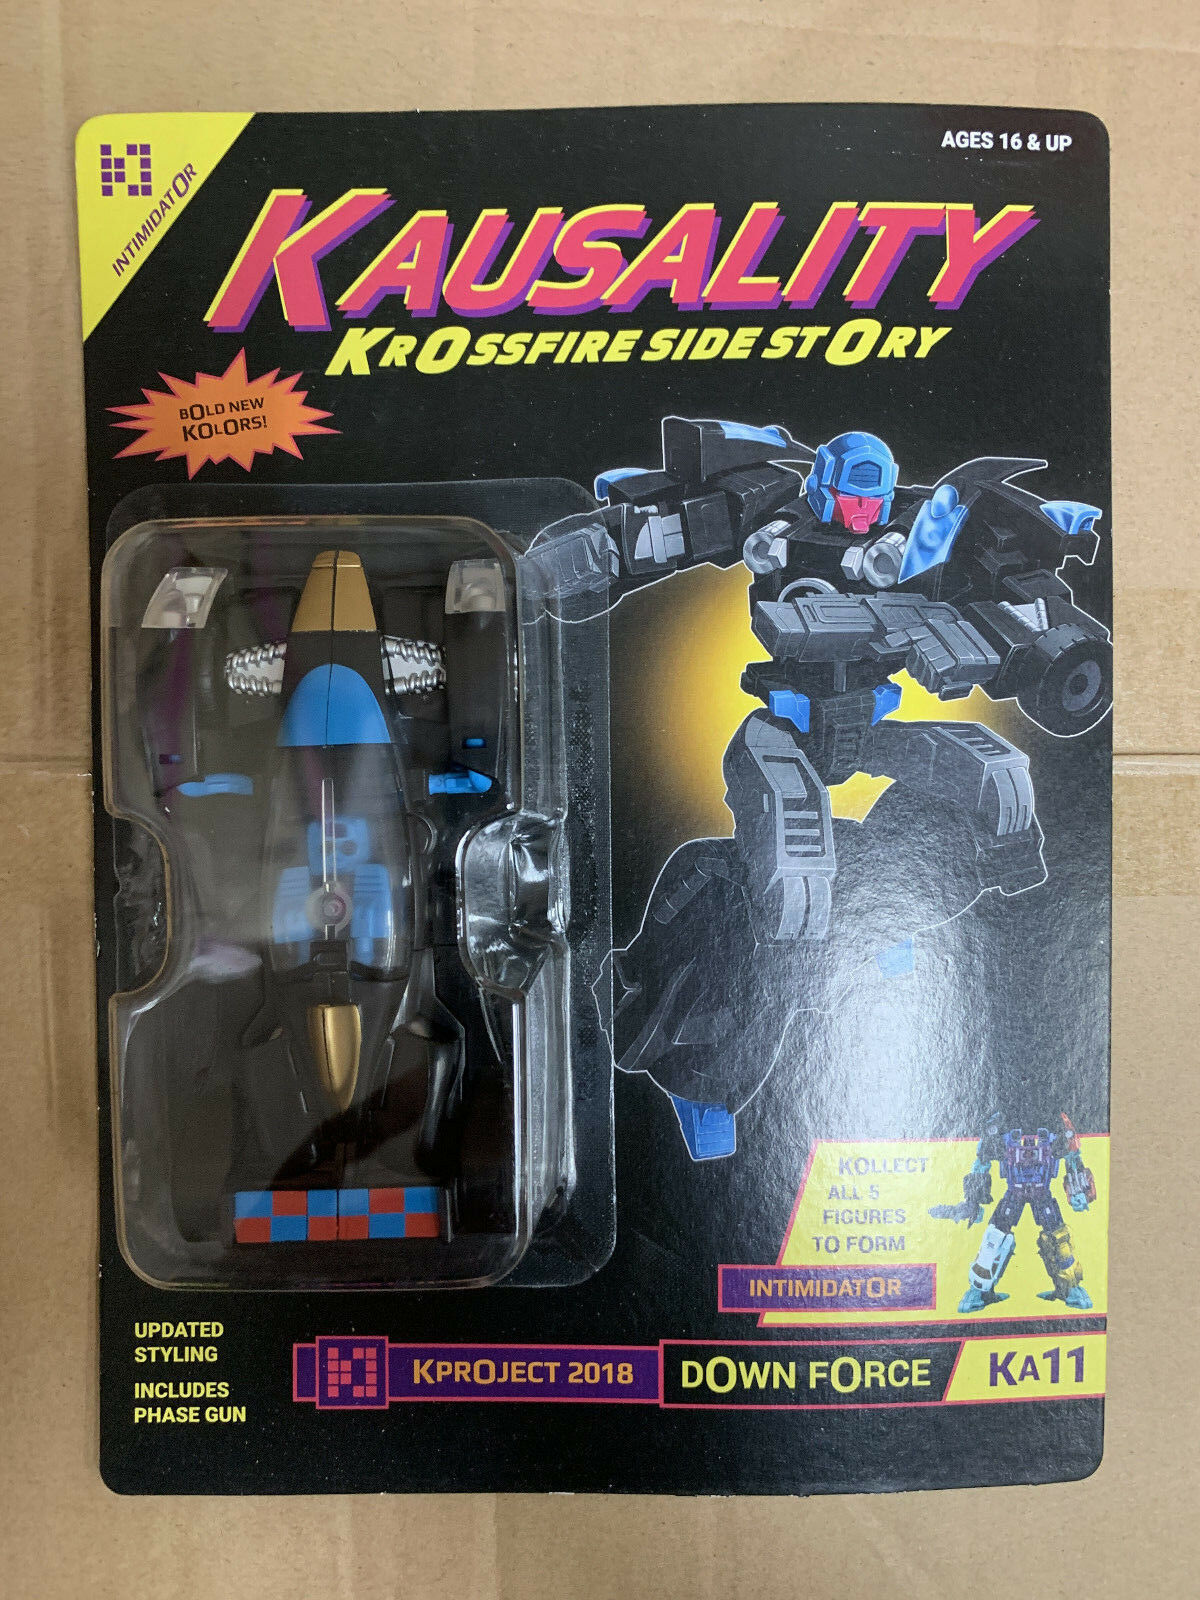 Transformers Fansproject Convention Kausality KA11 Down Force essiasor Dragstrip